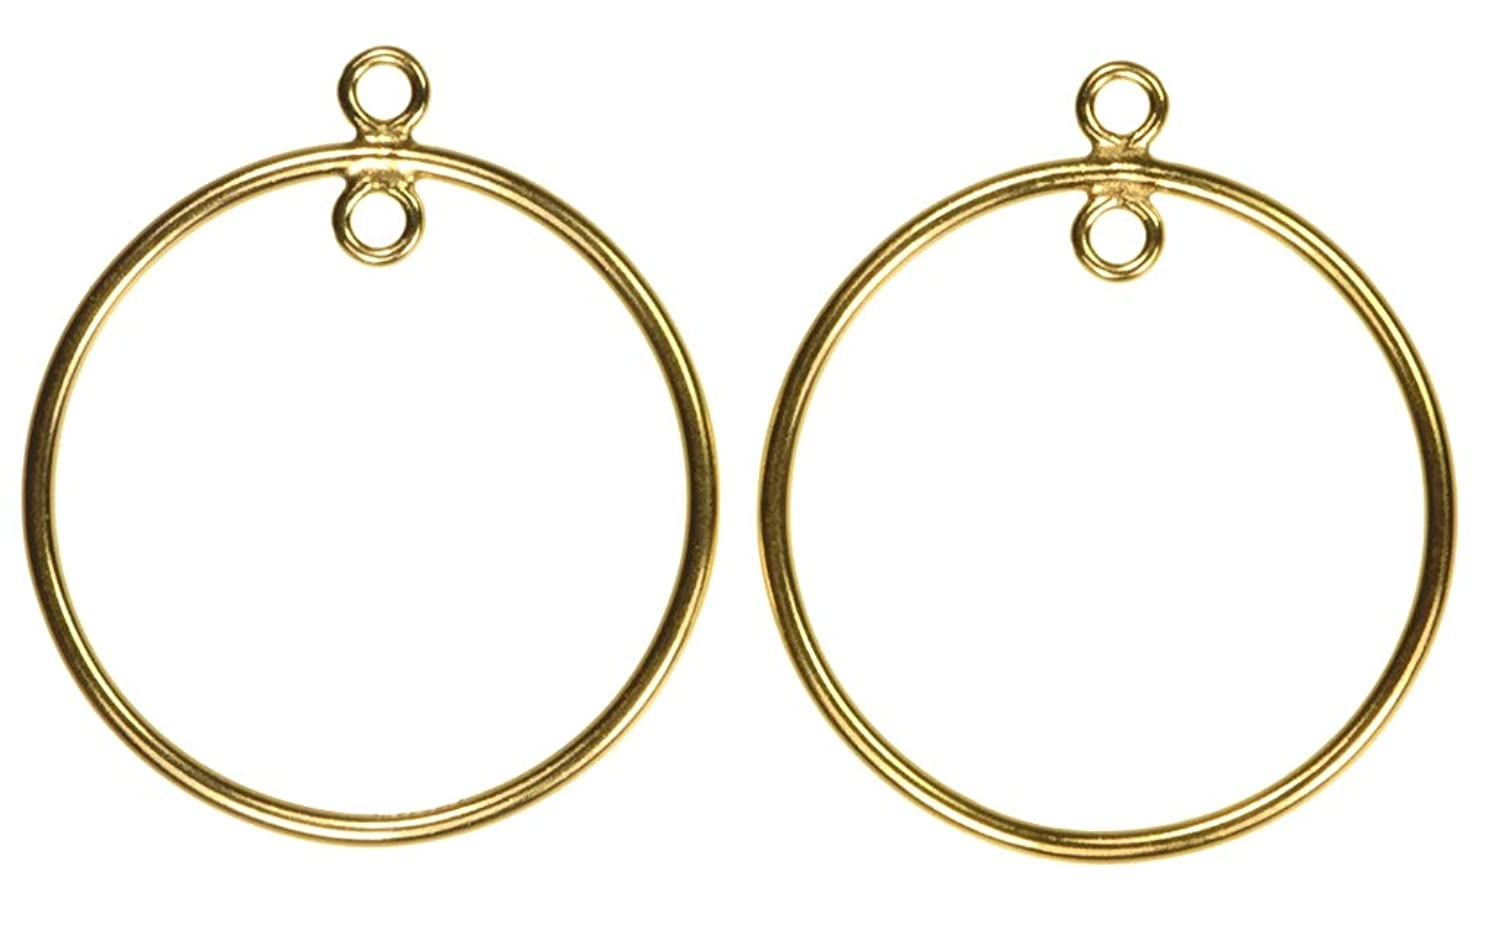 2 14K Gold Filled 25mm Round Drops w/Closed Jump Rings Insiide & Outside